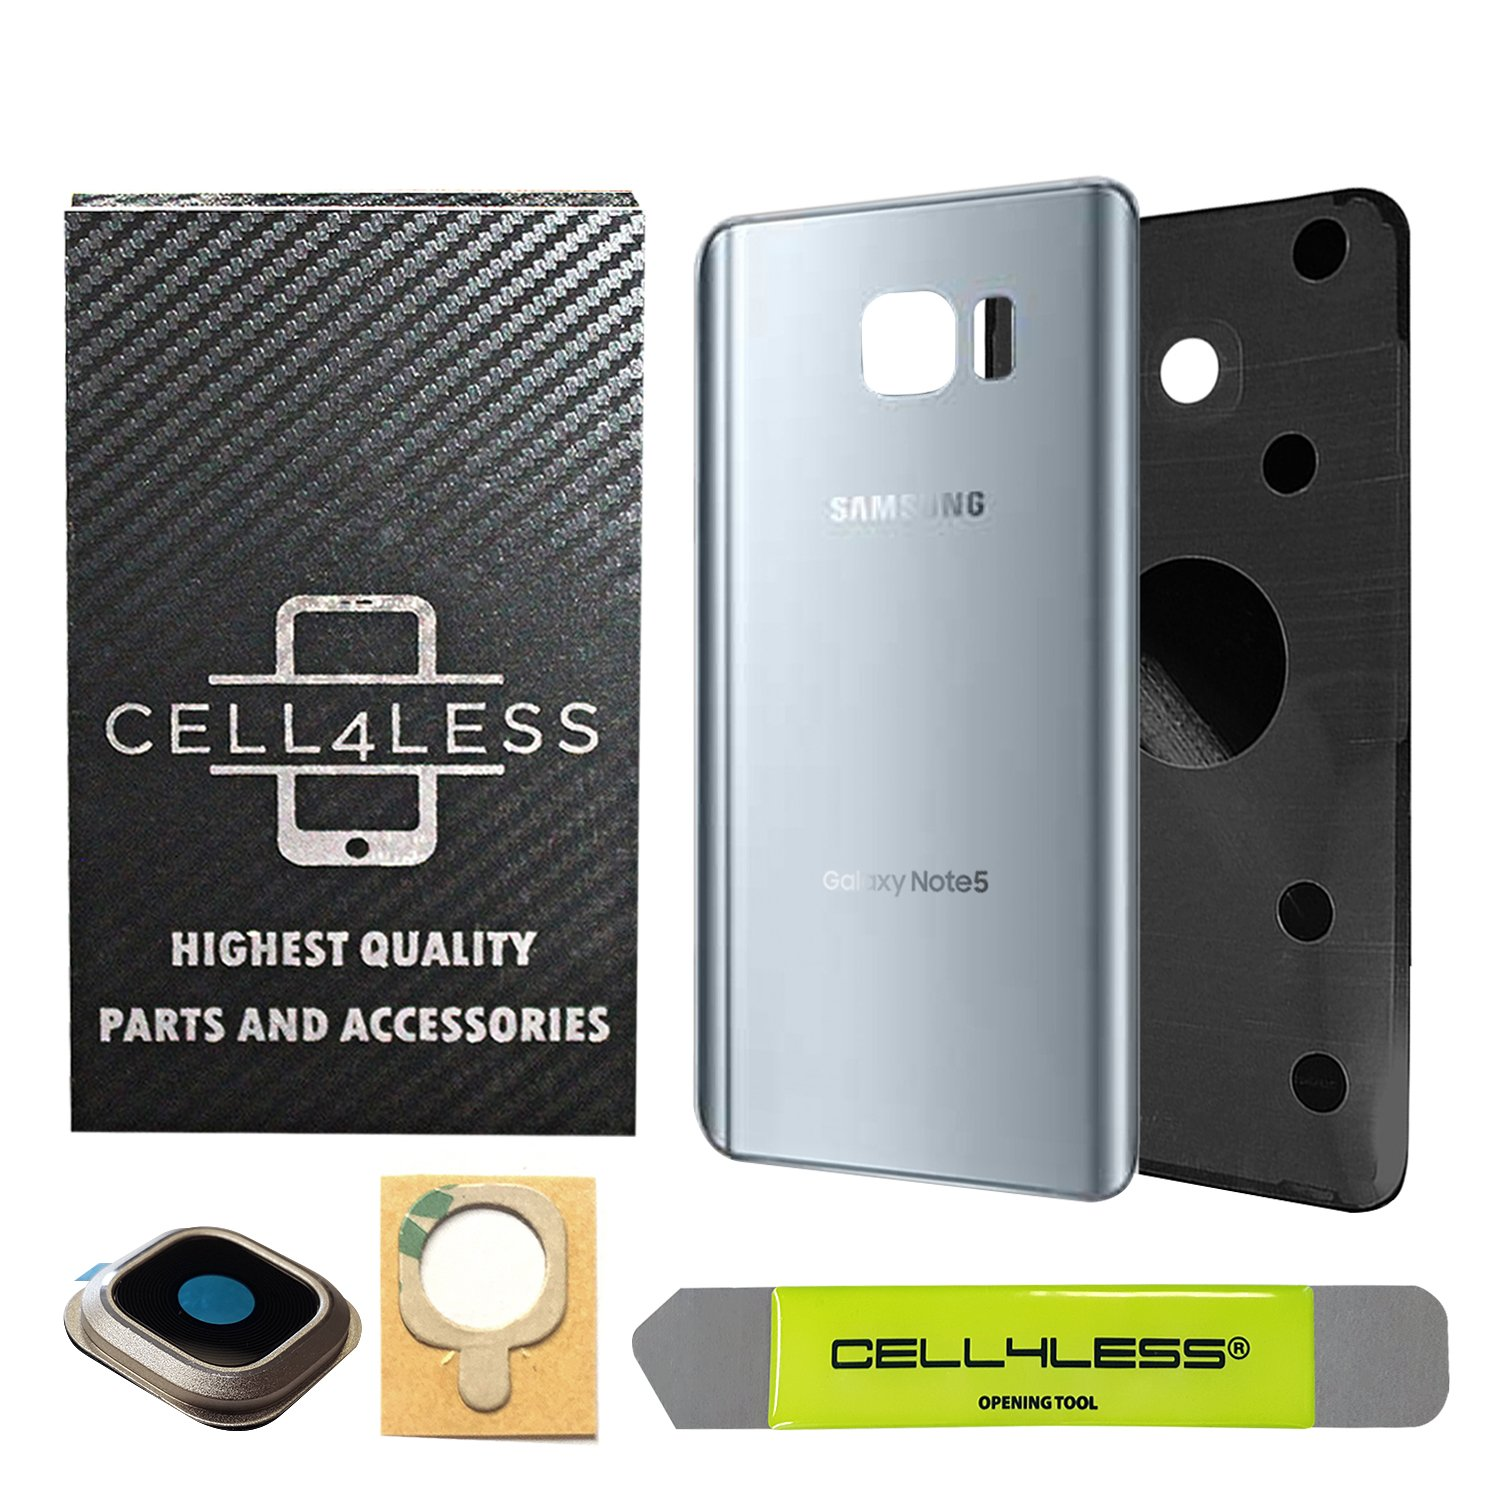 CELL4LESS Samsung Galaxy Note 5 Replacement Rear Back Glass Back Cover w/Custom Removal Tool & Pre-Installed Adhesive - Fits N920 Models - 2 Logo (Sapphire Black) (Silver)